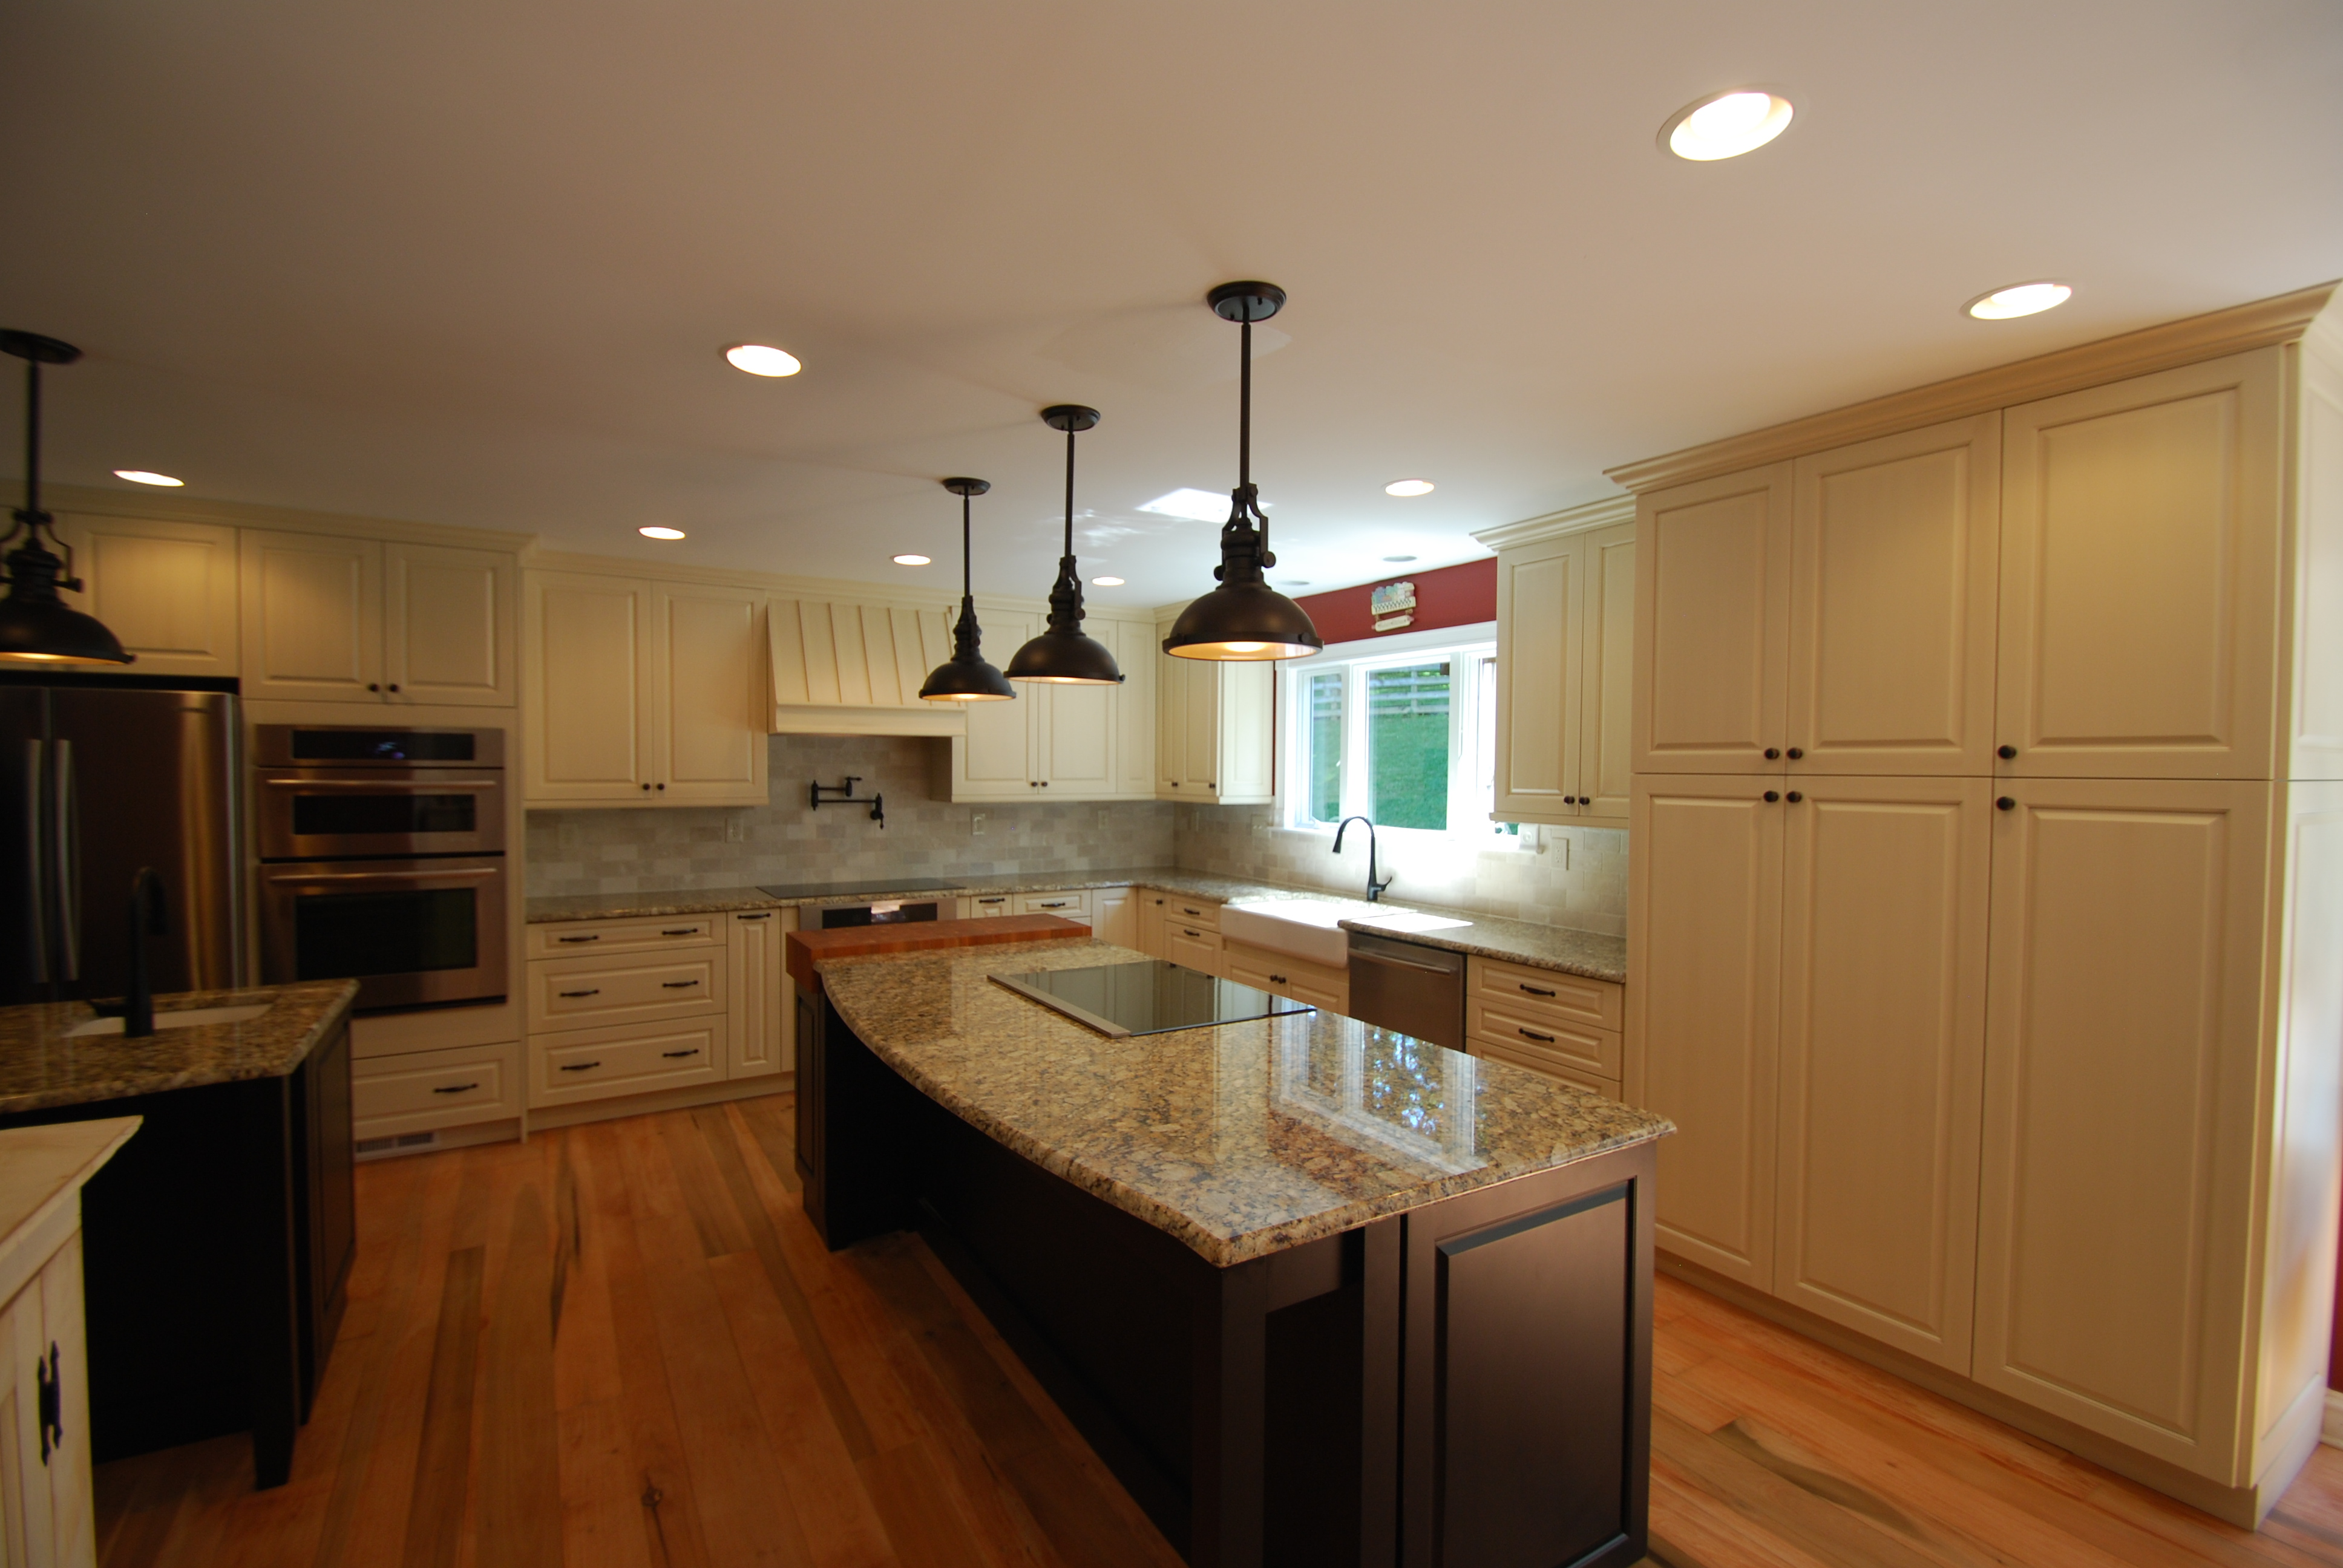 Design Kitchens Bath Llc Coupons Near Me In Damascus 8coupons